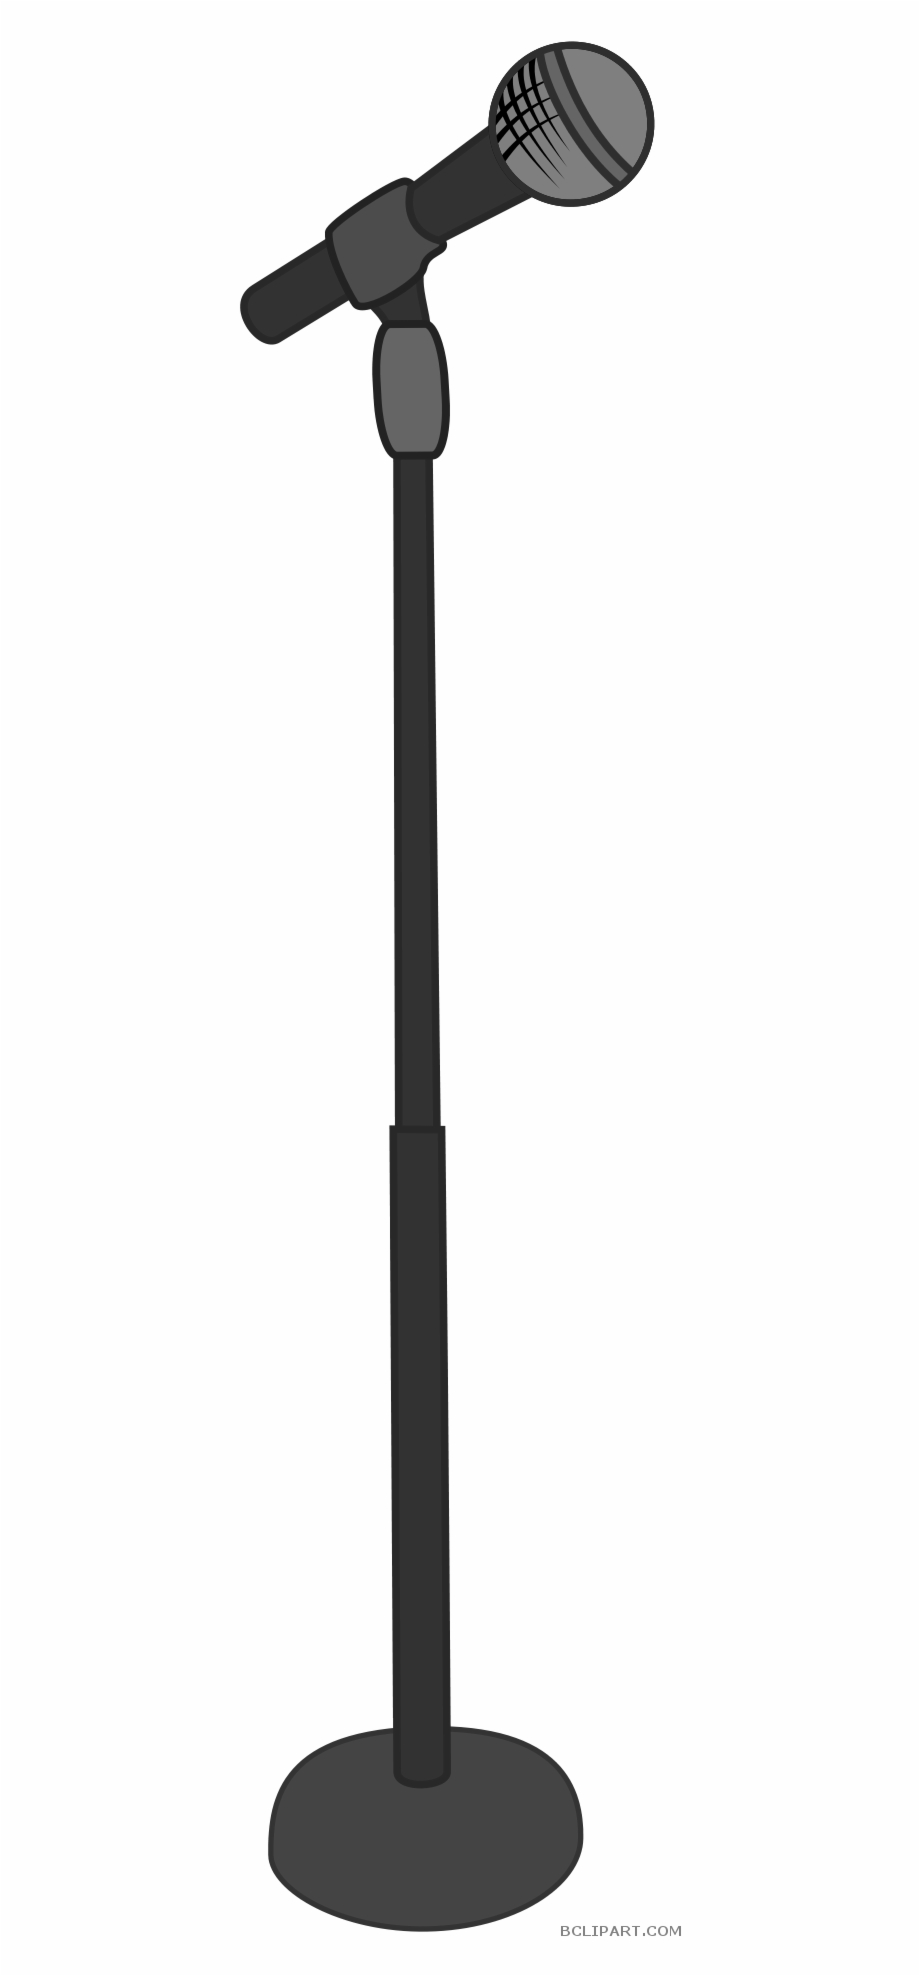 Microphone stand clipart free clipart freeuse stock Microphone Stand Clipart Free PNG Images & Clipart Download #2854291 ... clipart freeuse stock